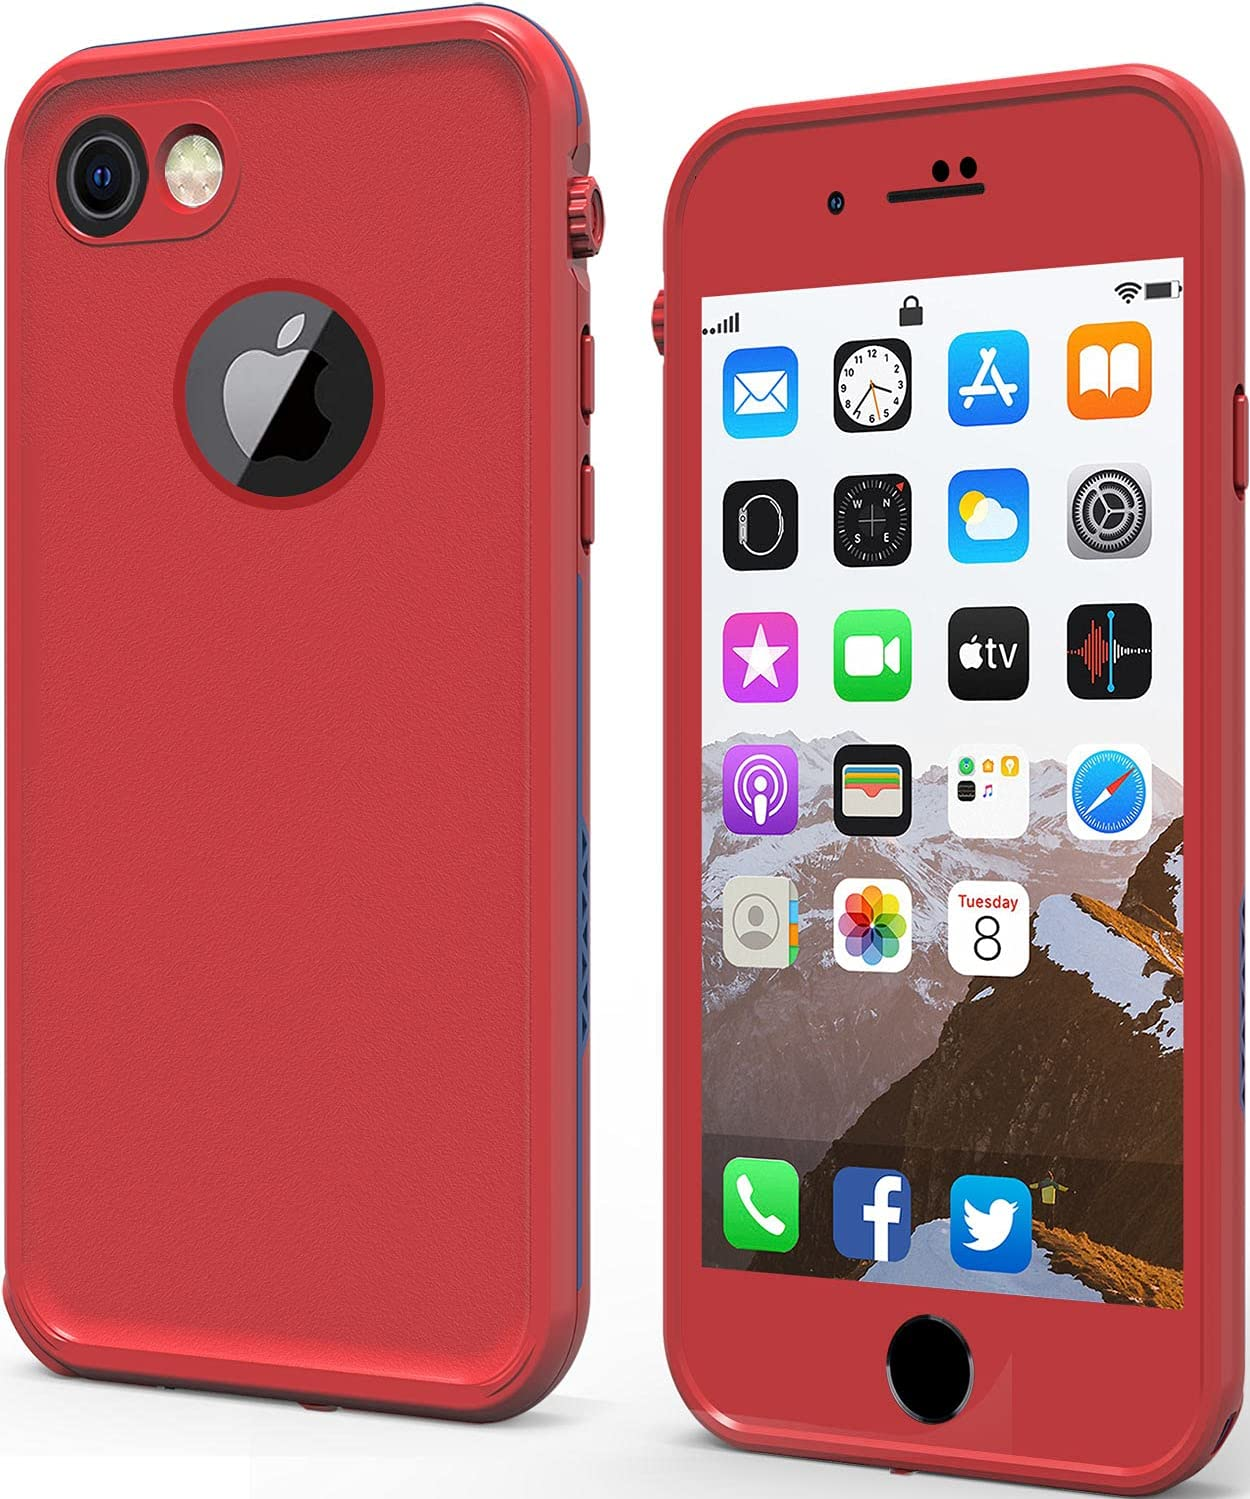 LOVE BEIDI iPhone 8 7 Waterproof Case Cover Built-in Screen Protector Fully Sealed Life Shockproof Snowproof Underwater Protective Cases for iPhone 8 7 4.7